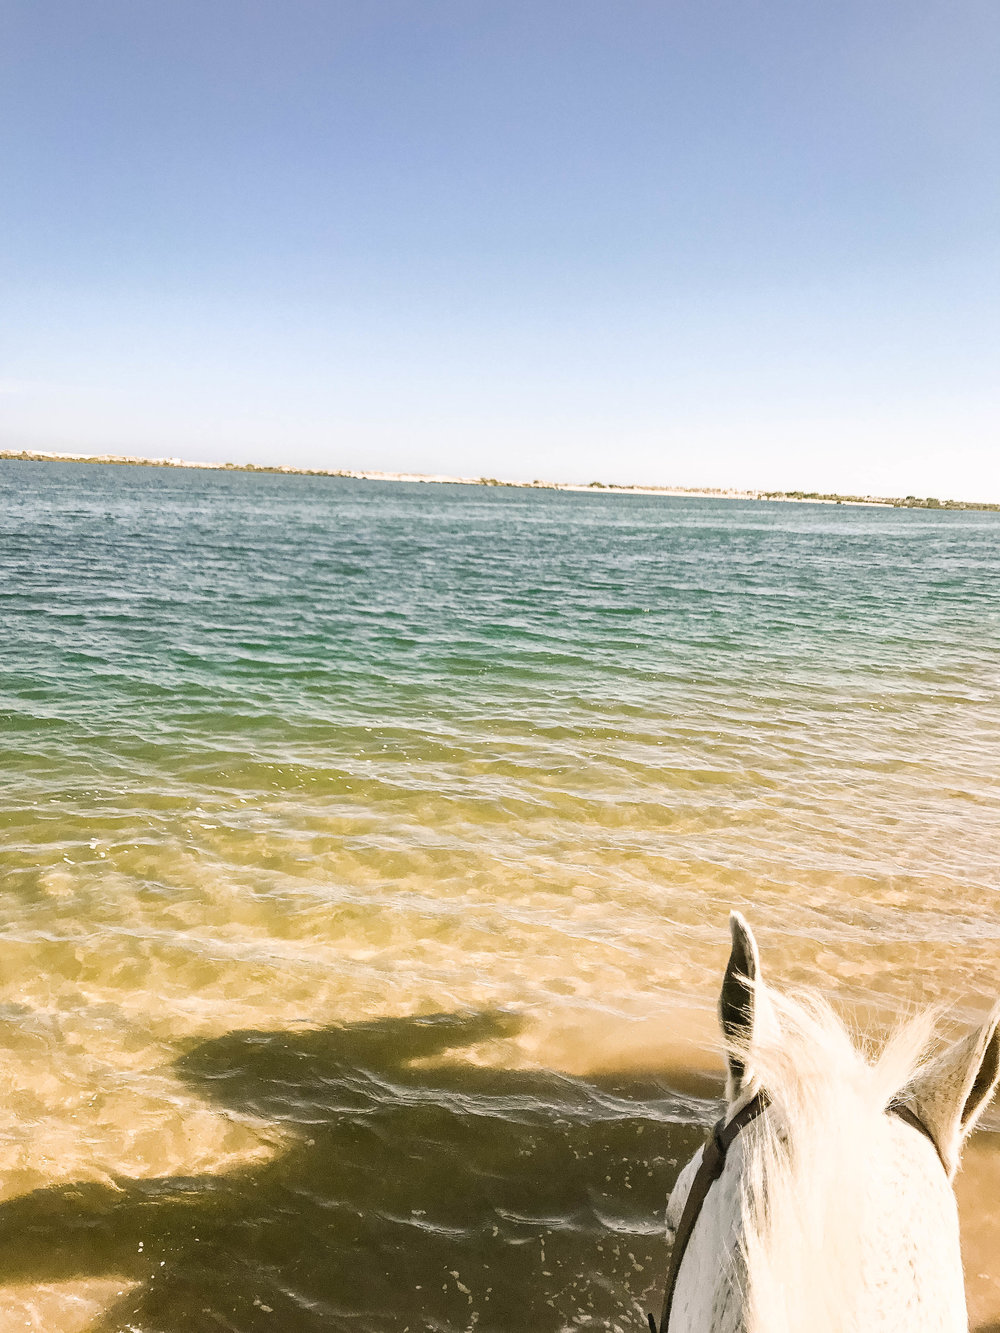 Horseback riding on the coast  - ride through the water, orange trees, and vineyards